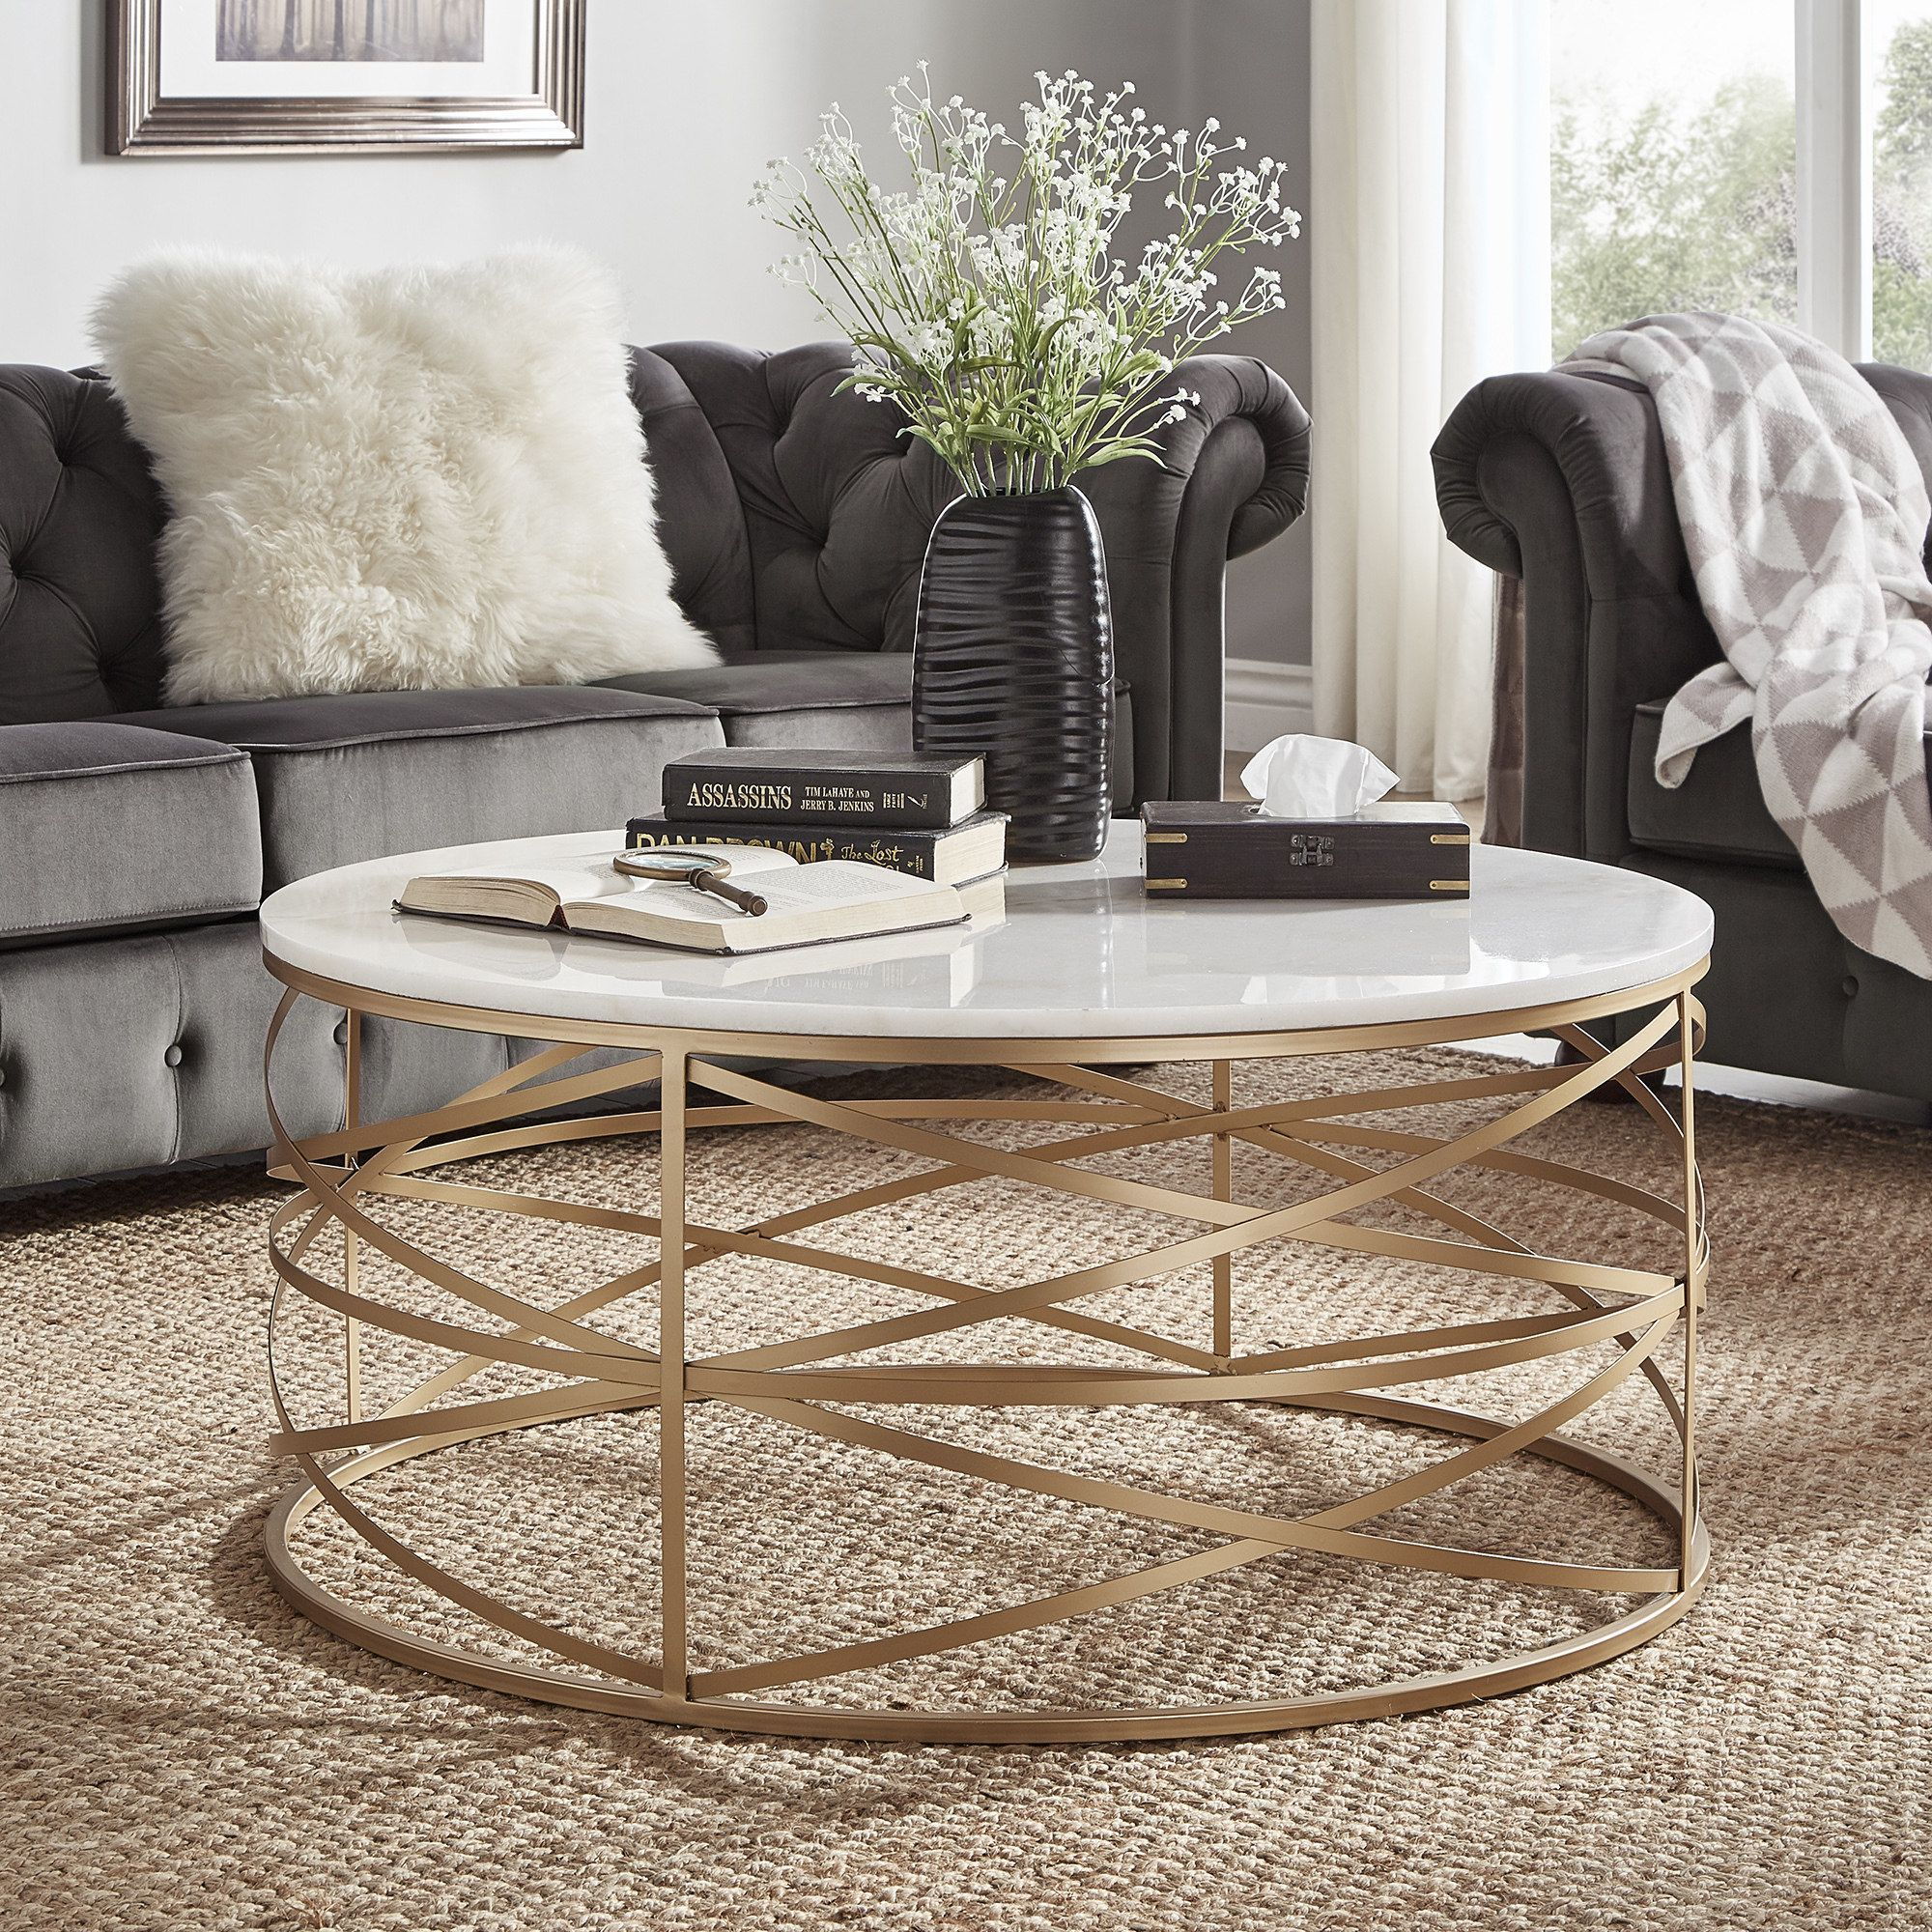 paisley round gold accent tables with marble tops inspire bold table top piece set coffee and end jcpenney rugs clearance small triangle ikea side rustic chairs dresser target